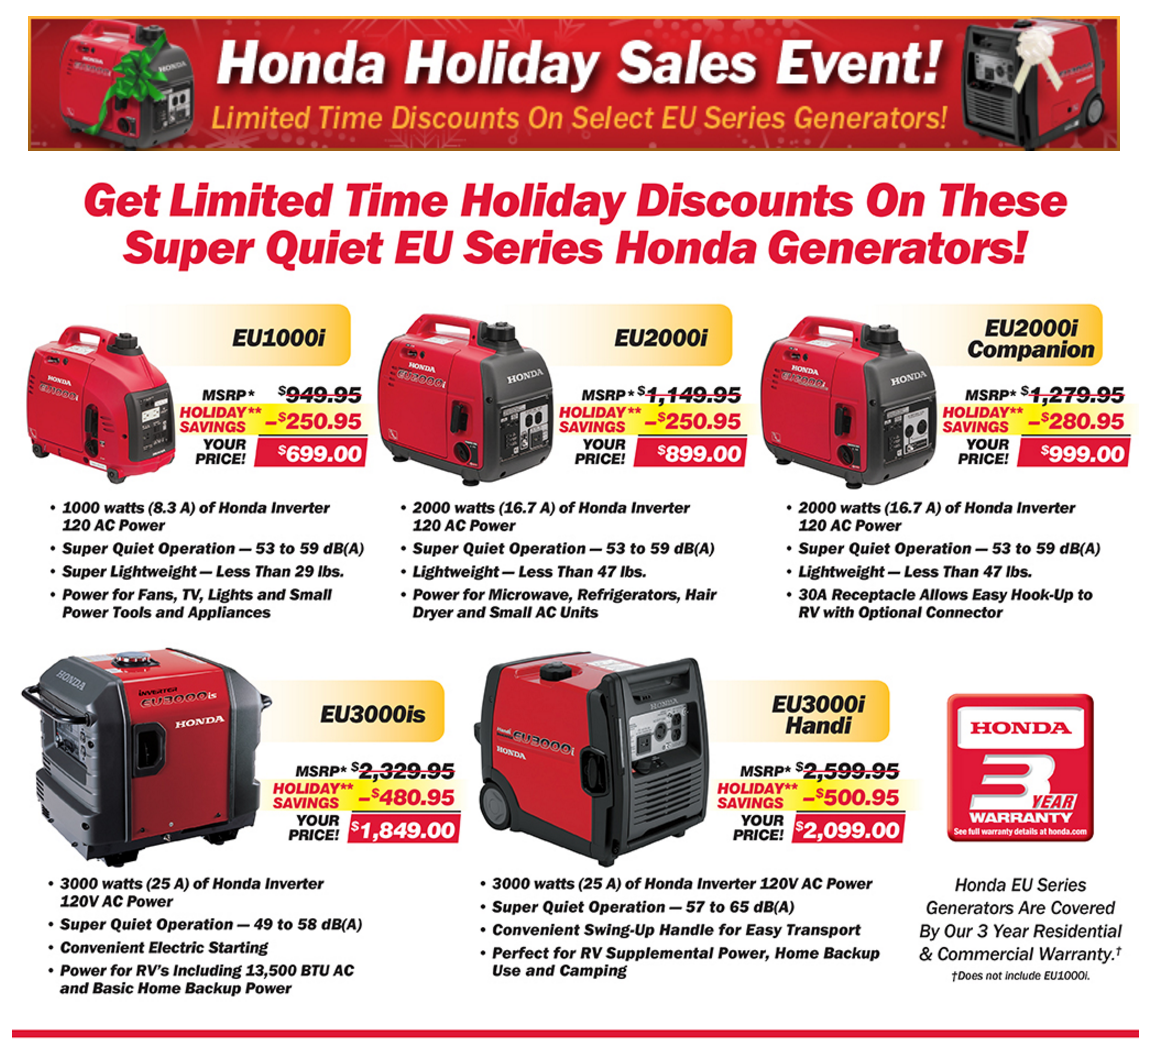 honda hliday sales event offer home page